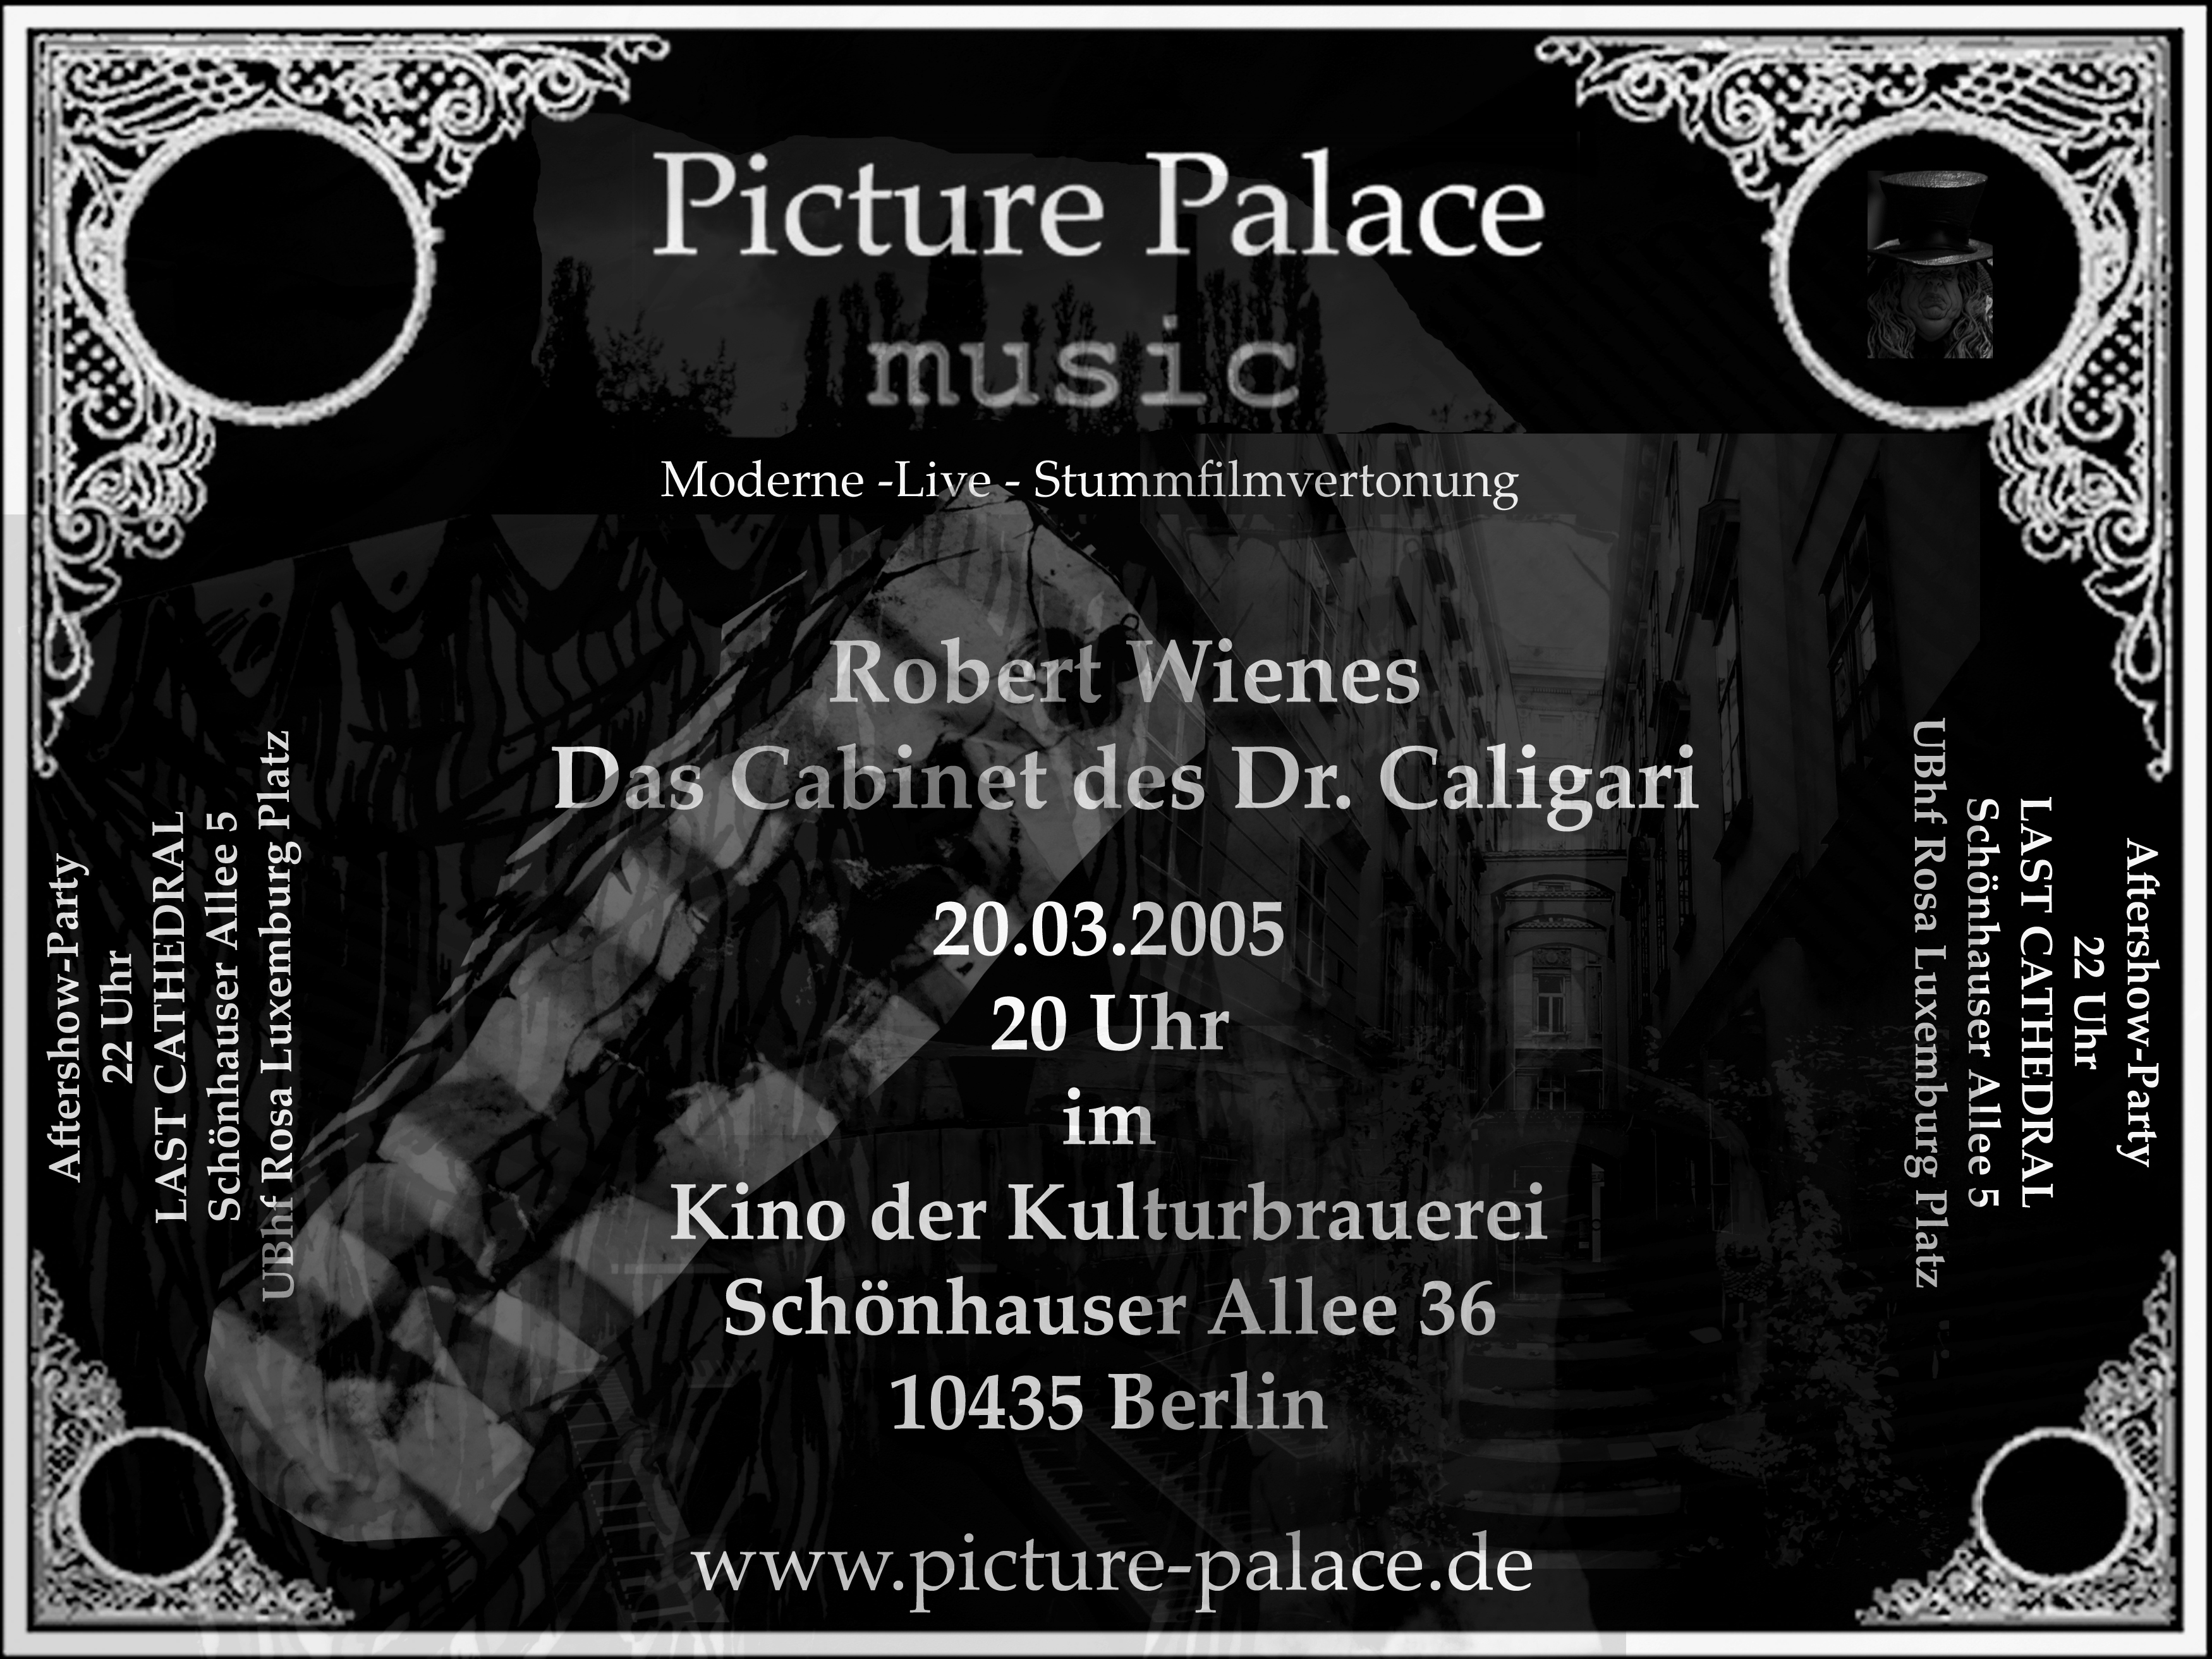 Kino in der Kulturbrauerei Das Cabinet des Dr Caligari Picture Palace music